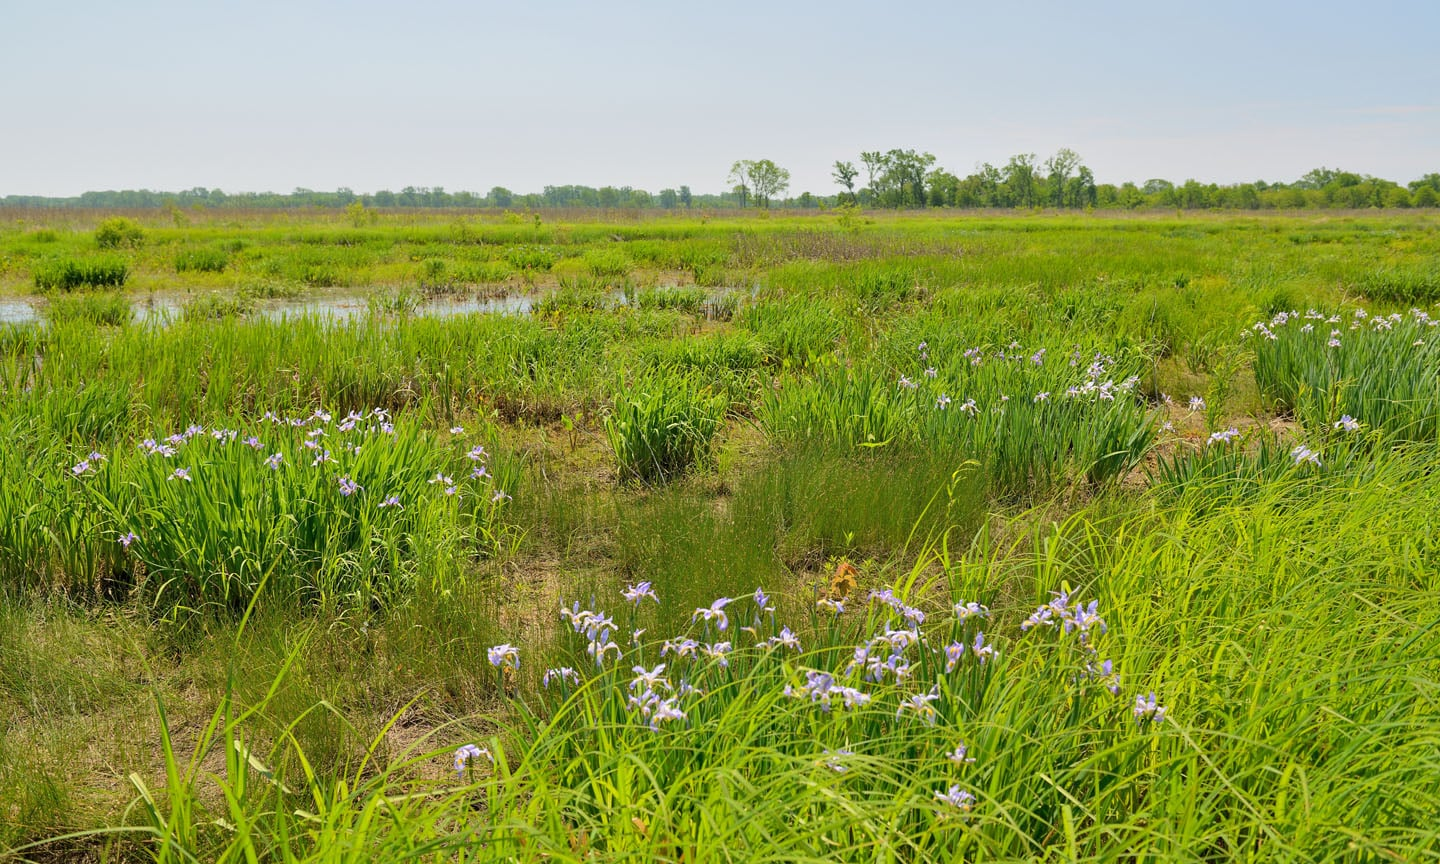 An example of a sedge meadow at Midewin National Tallgrass Prairie.